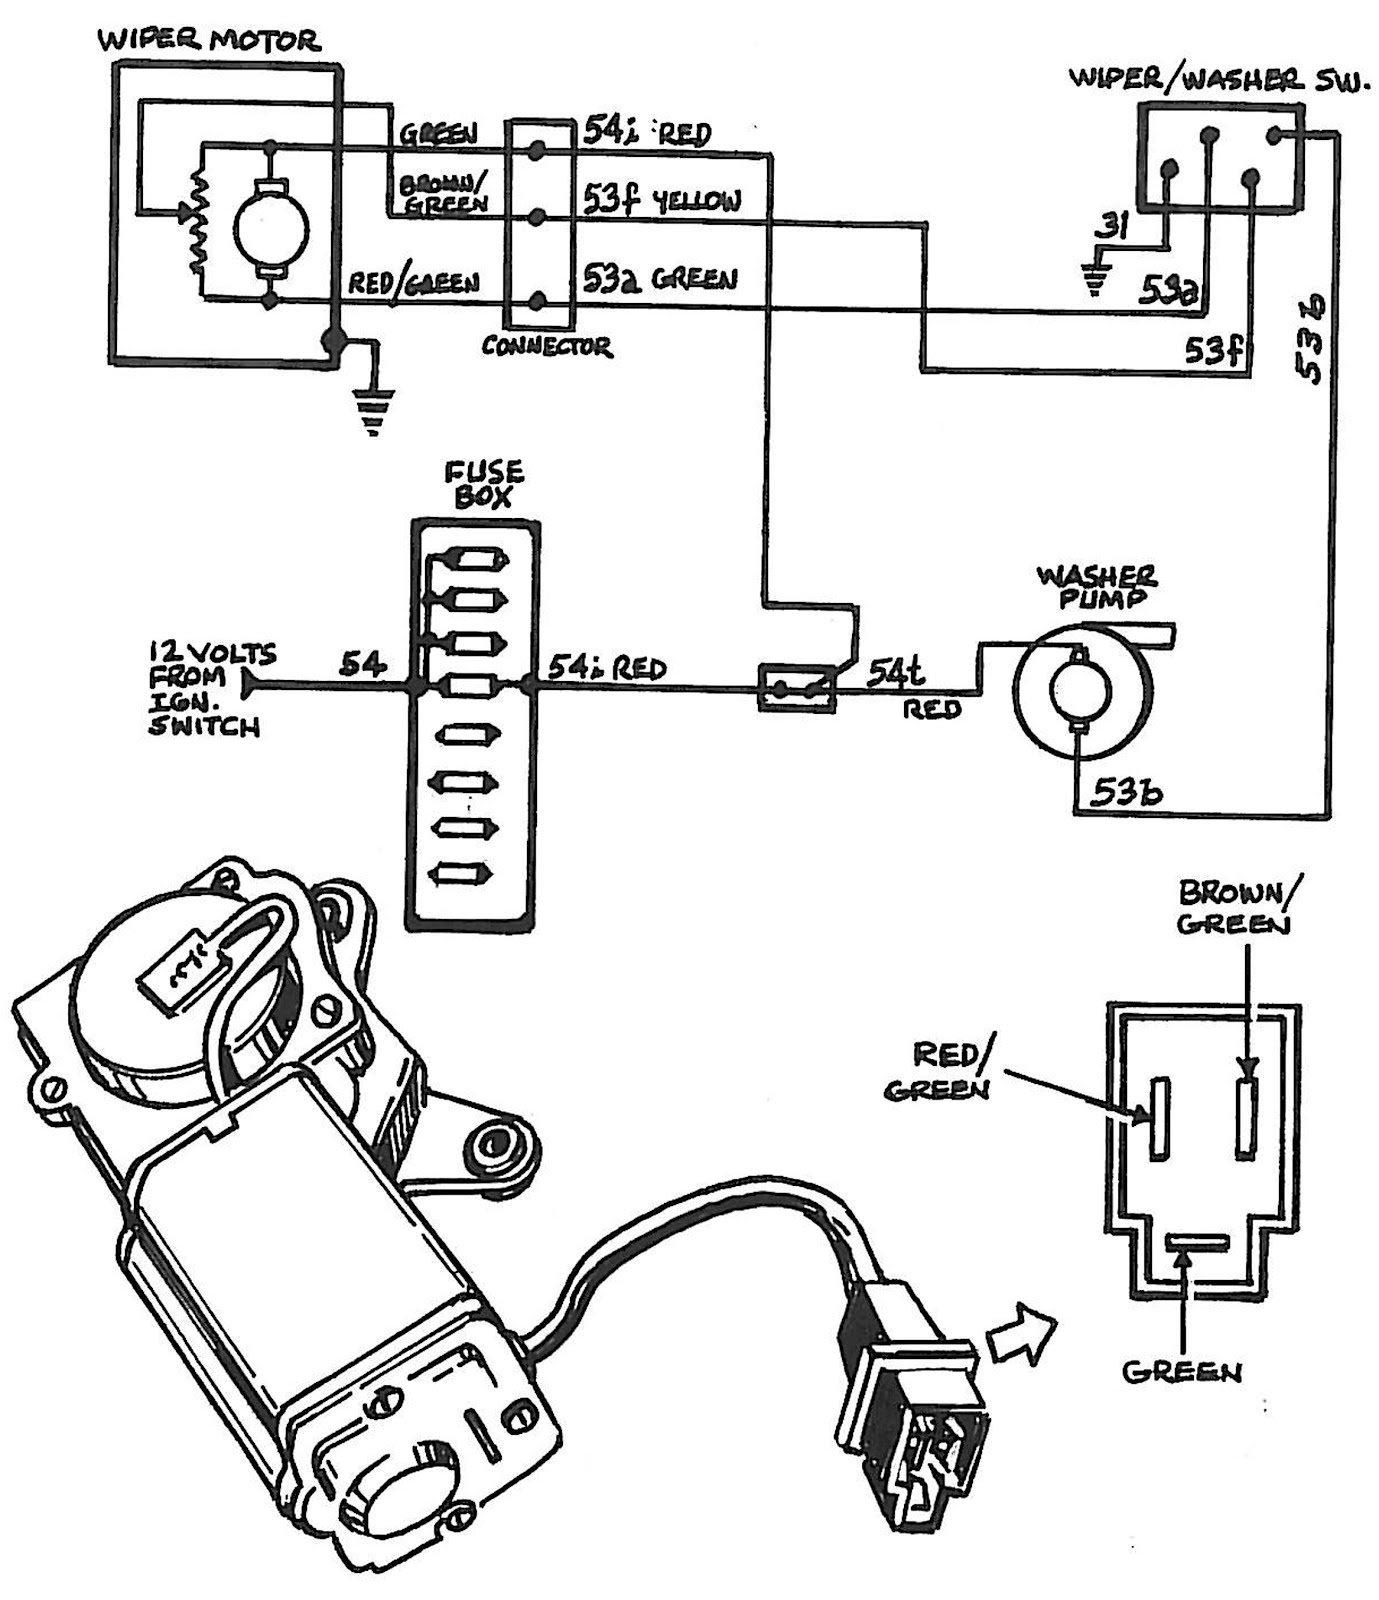 Audi Wiper Motor Wiring - Preview Wiring Diagram